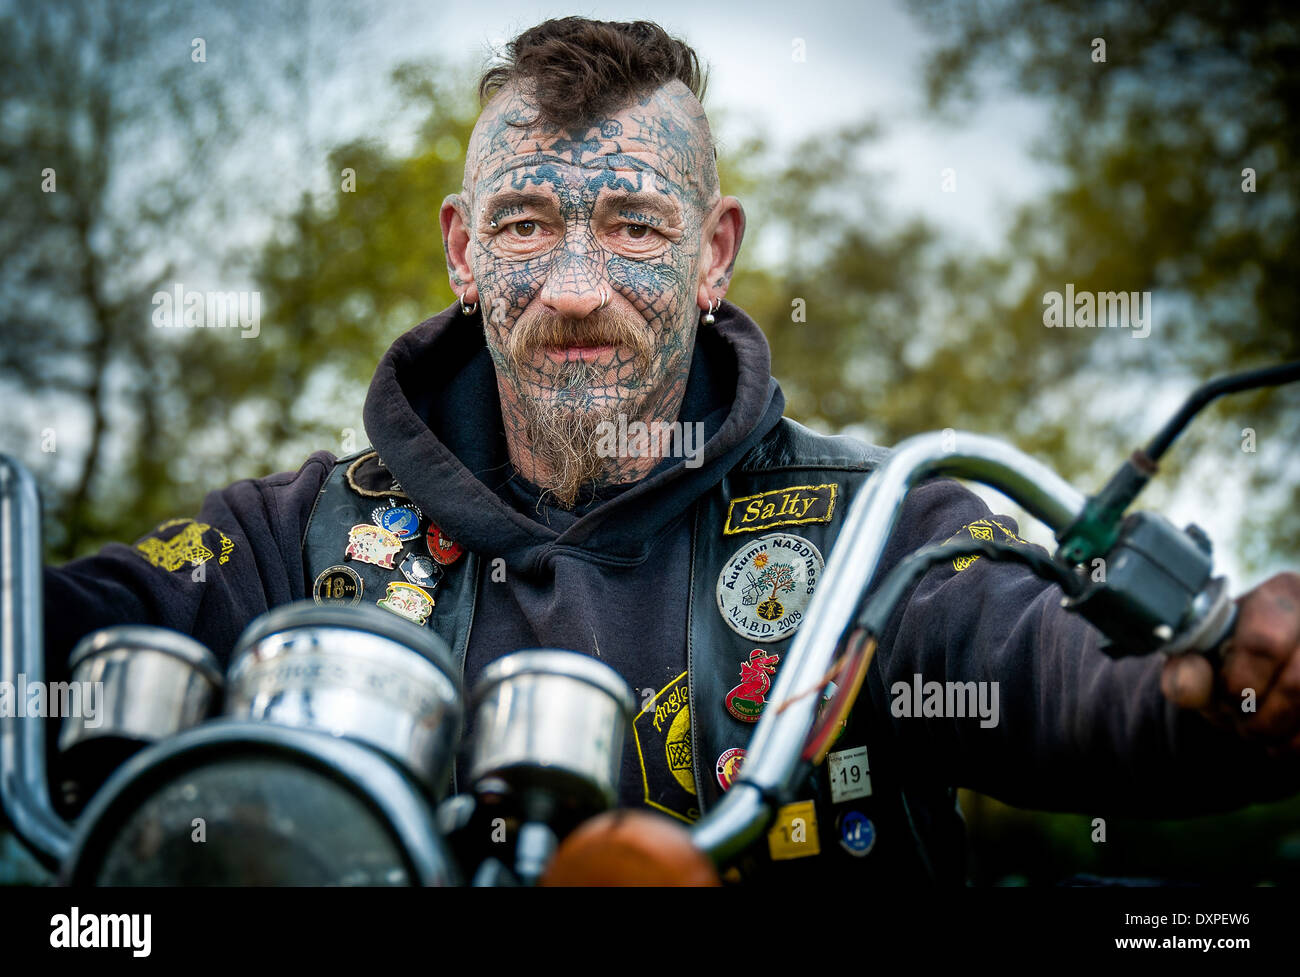 Male biker with facial tattoos and piercings - Stock Image